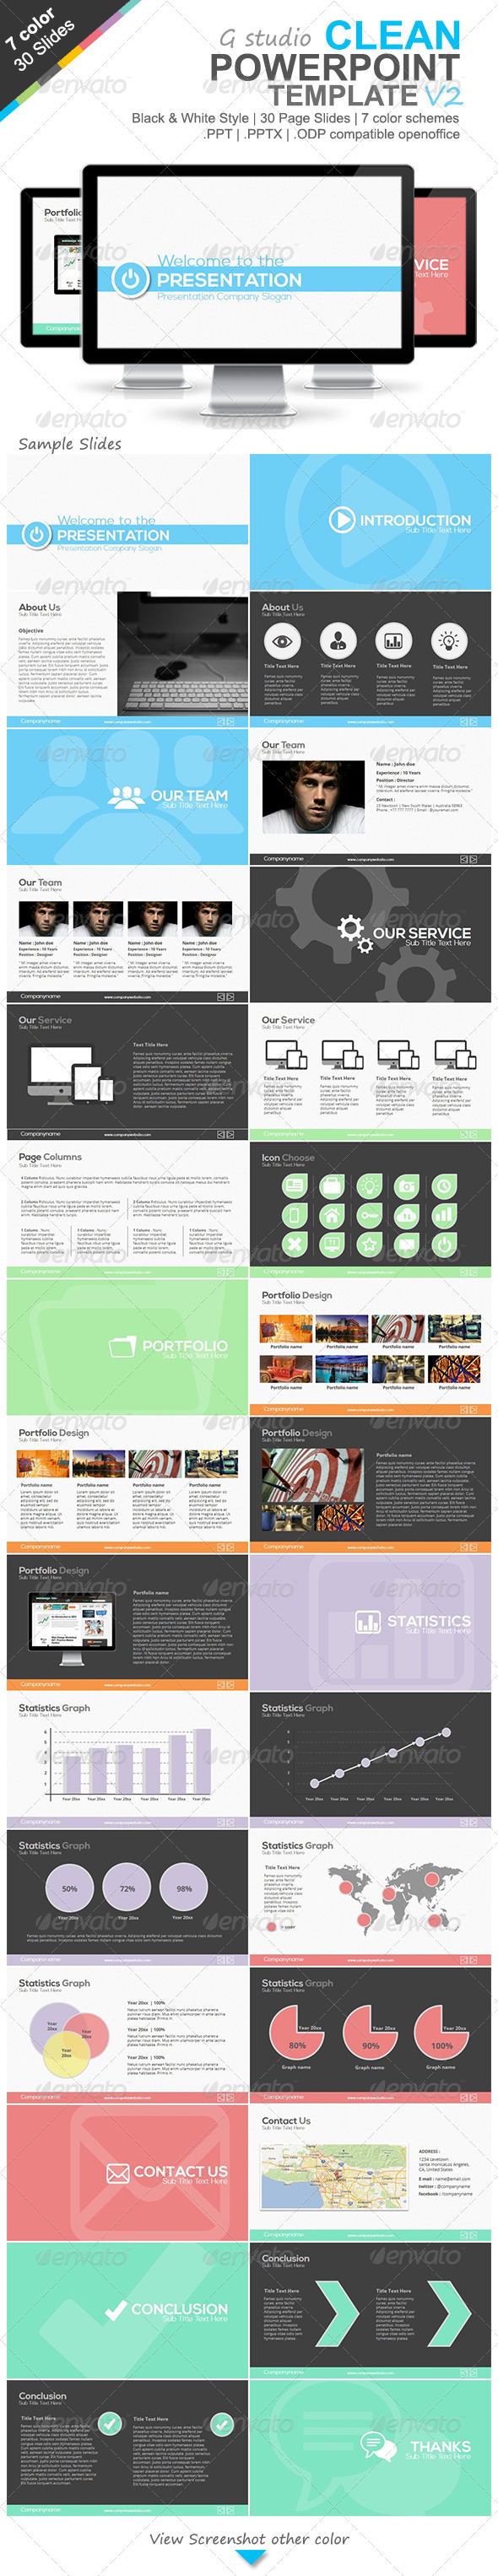 Gstudio Clean Powerpoint Template V2 - Powerpoint Templates Presentation Templates